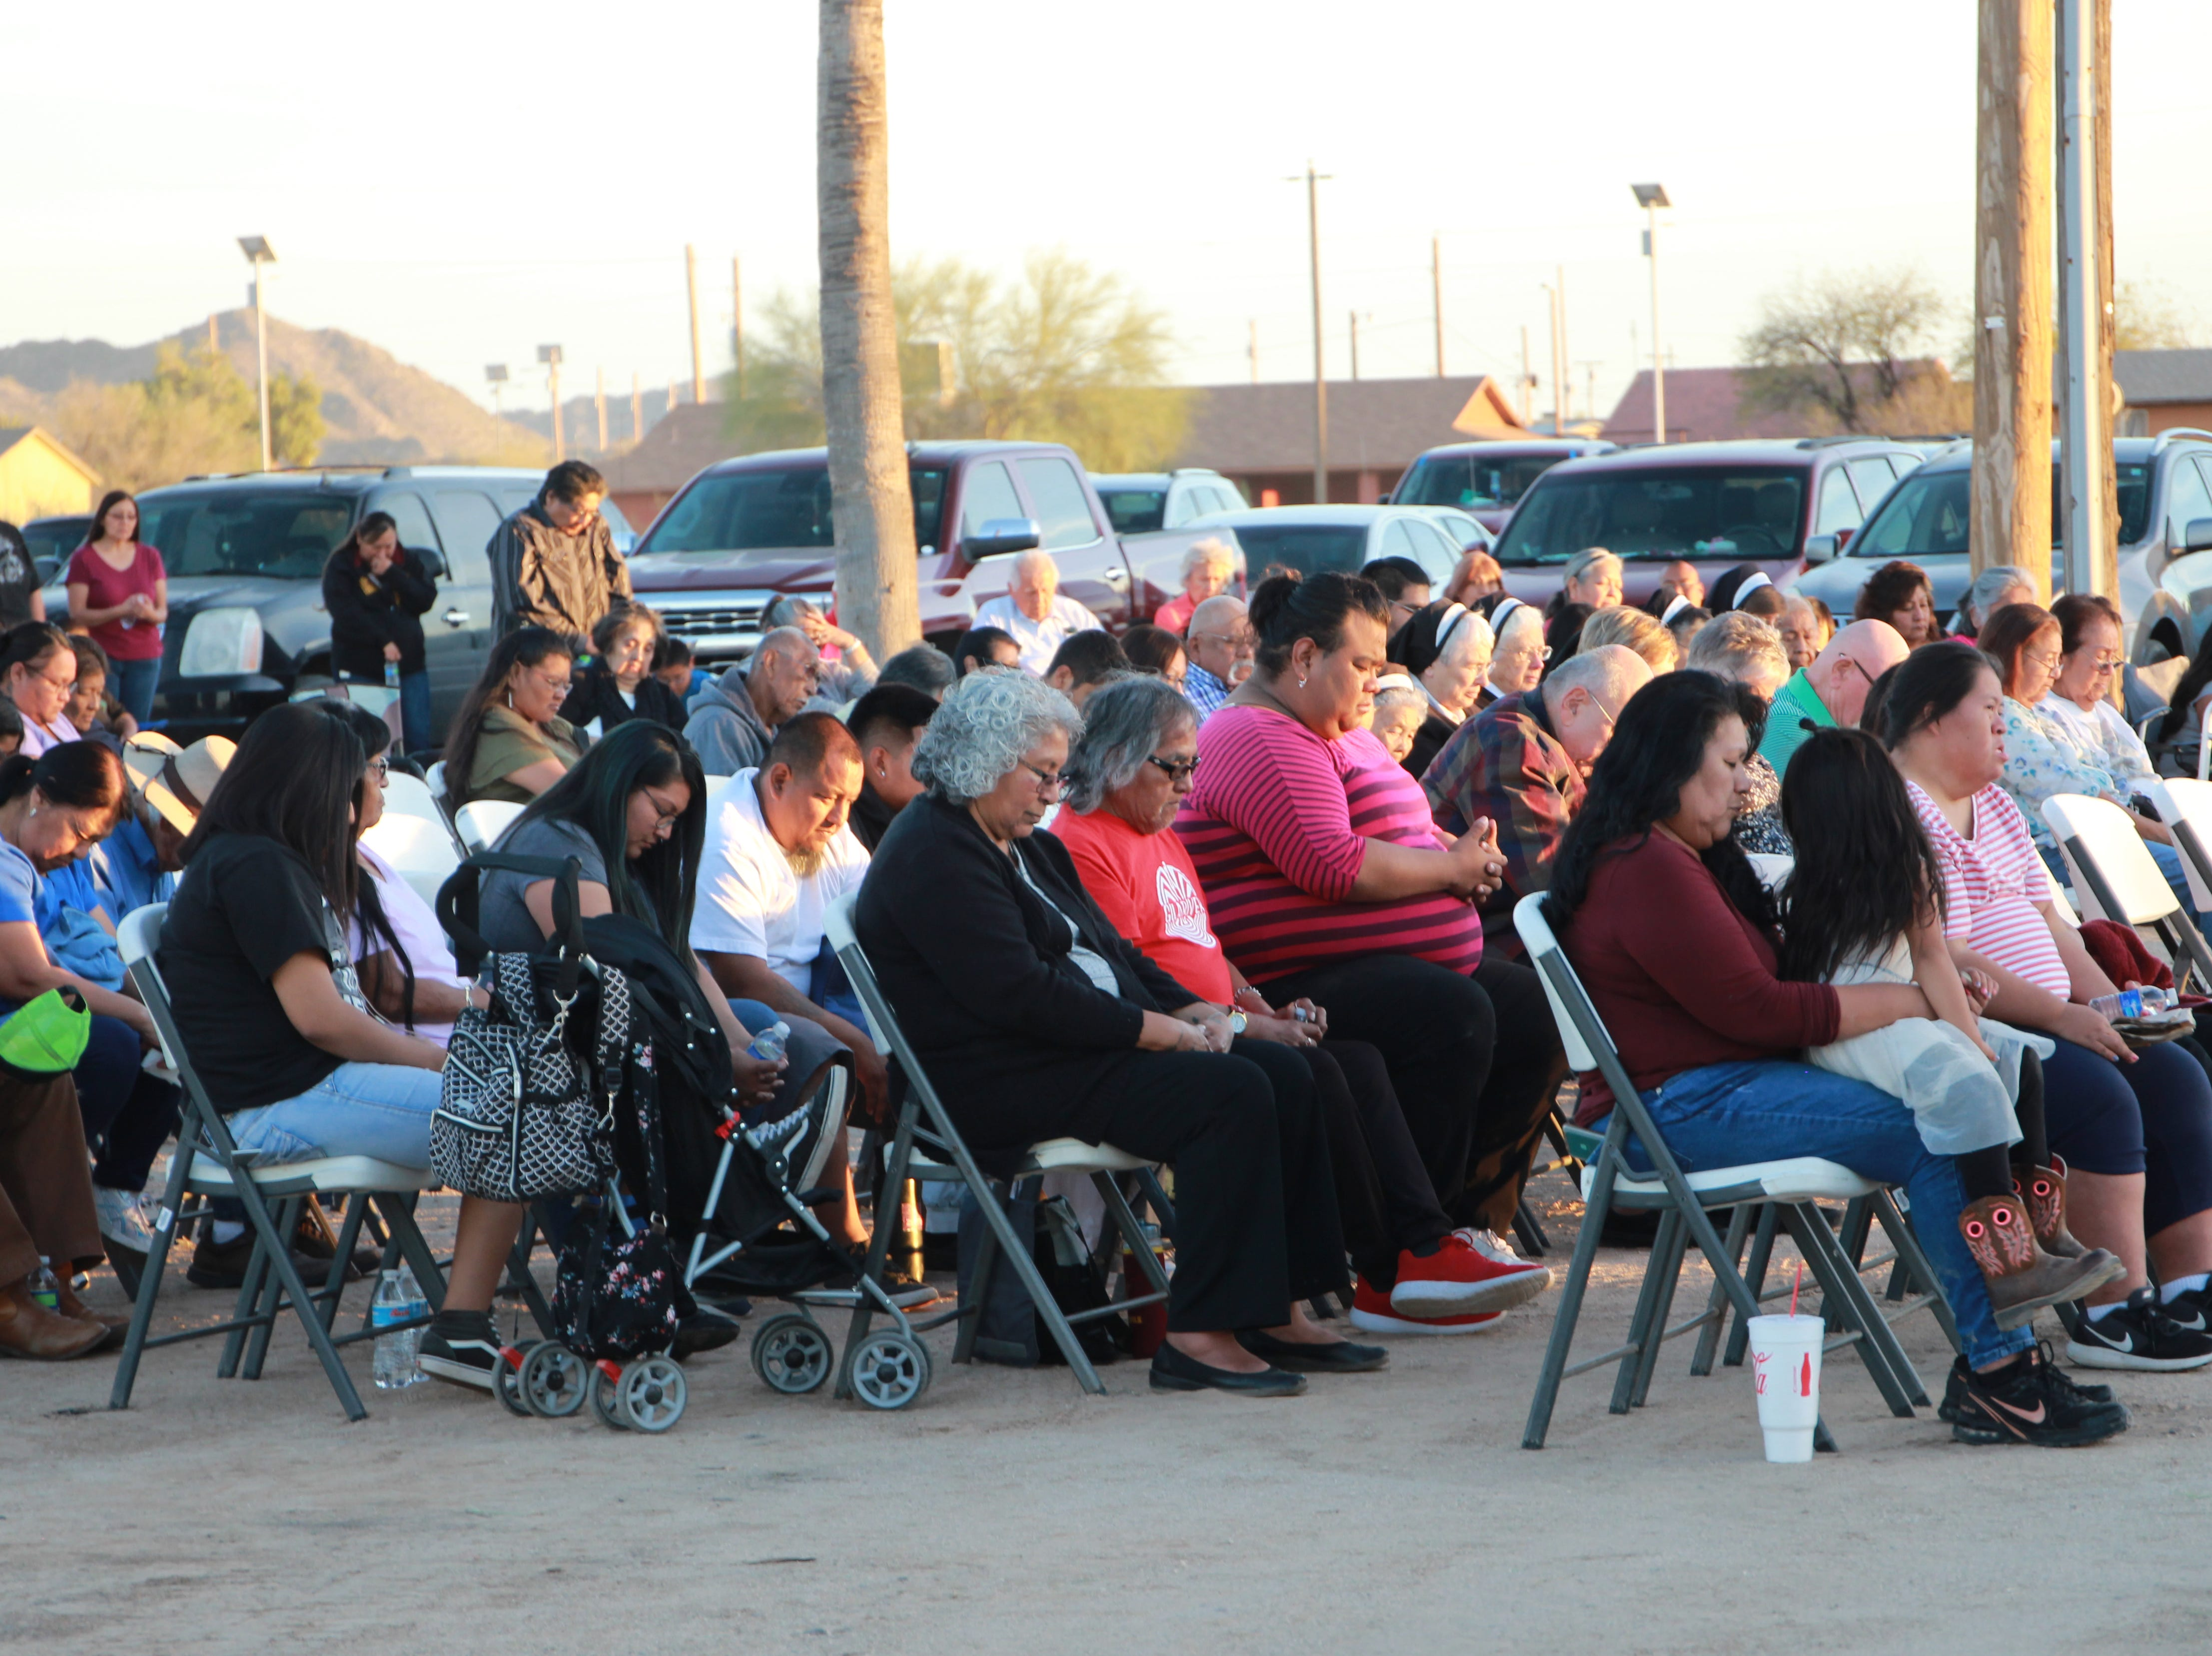 Members of the community pray during the vigil on Friday evening.